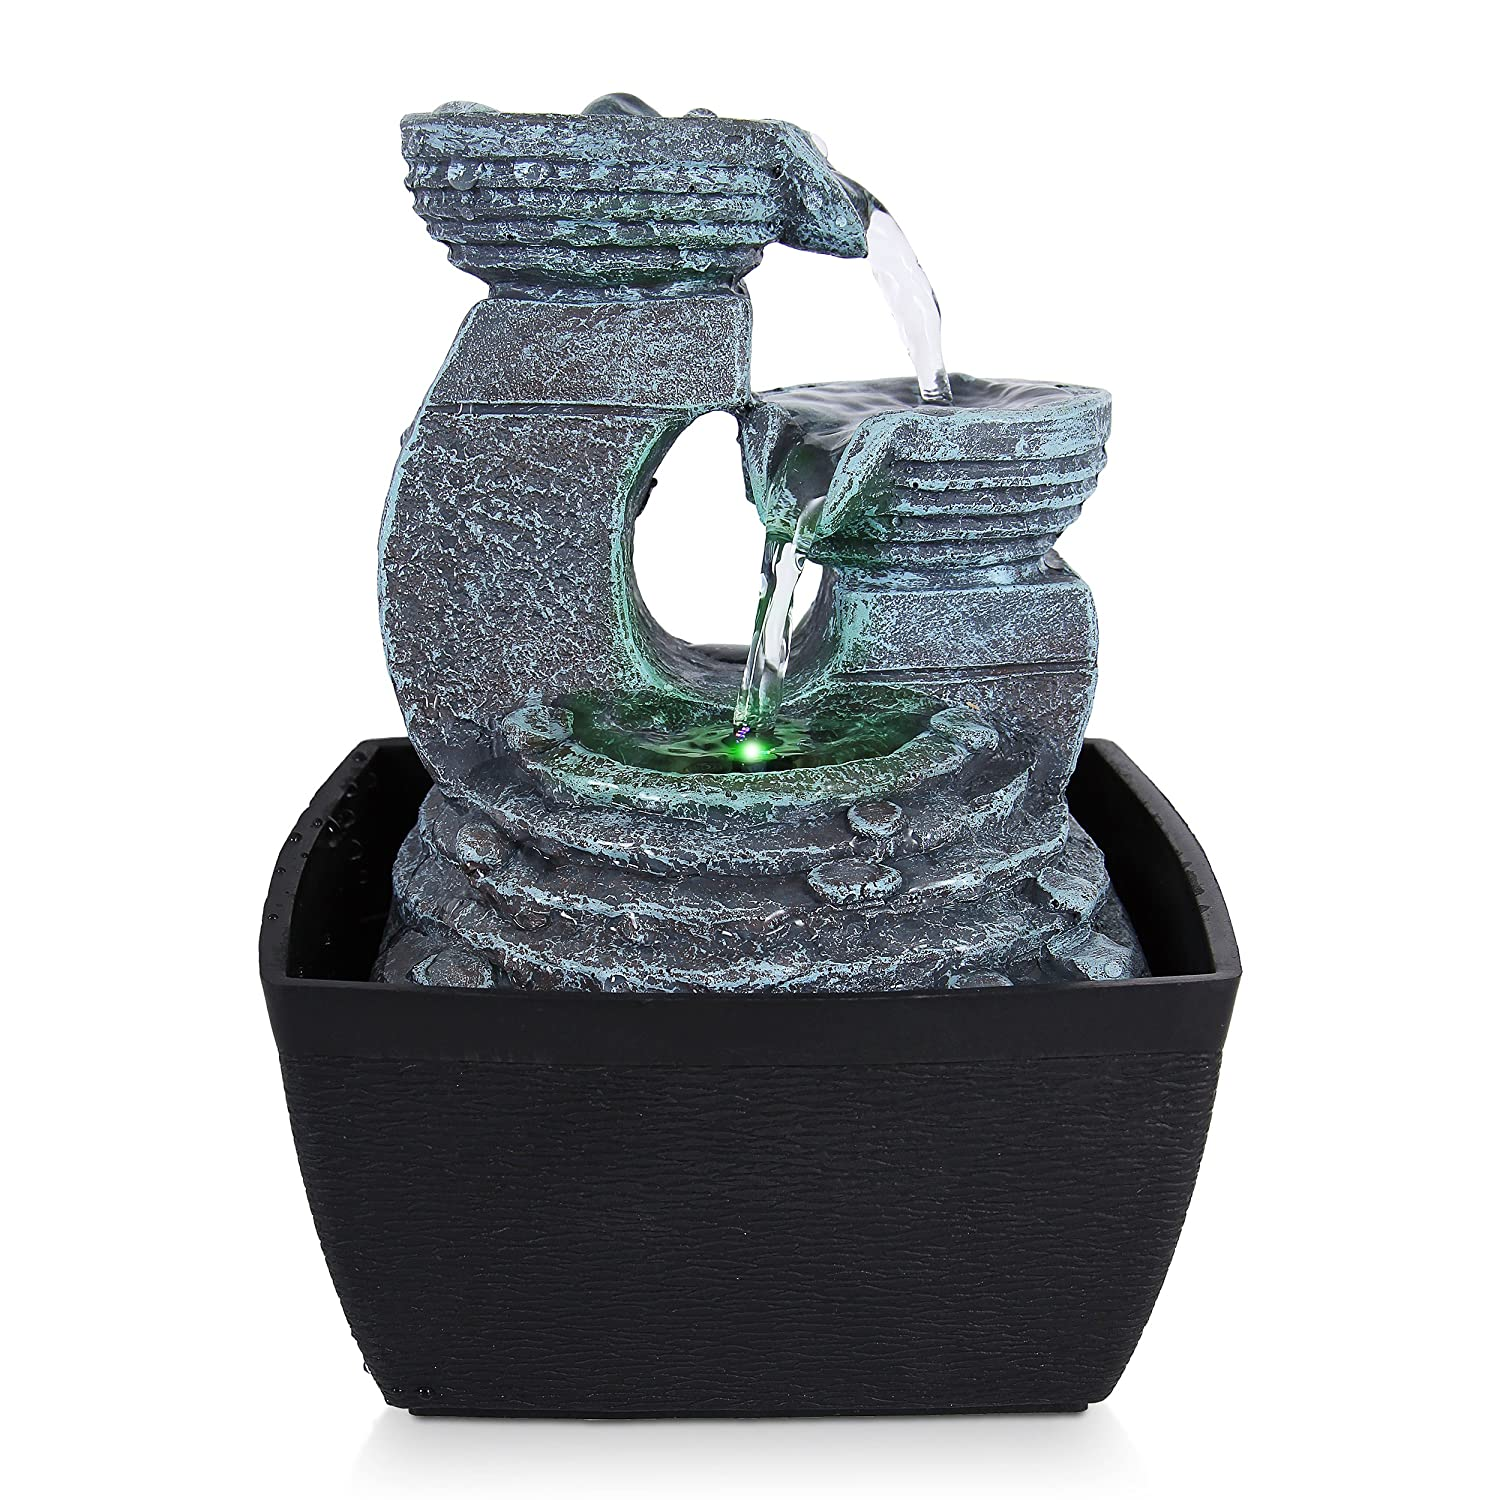 Tabletop Fountains Online Shopping For Clothing Shoes